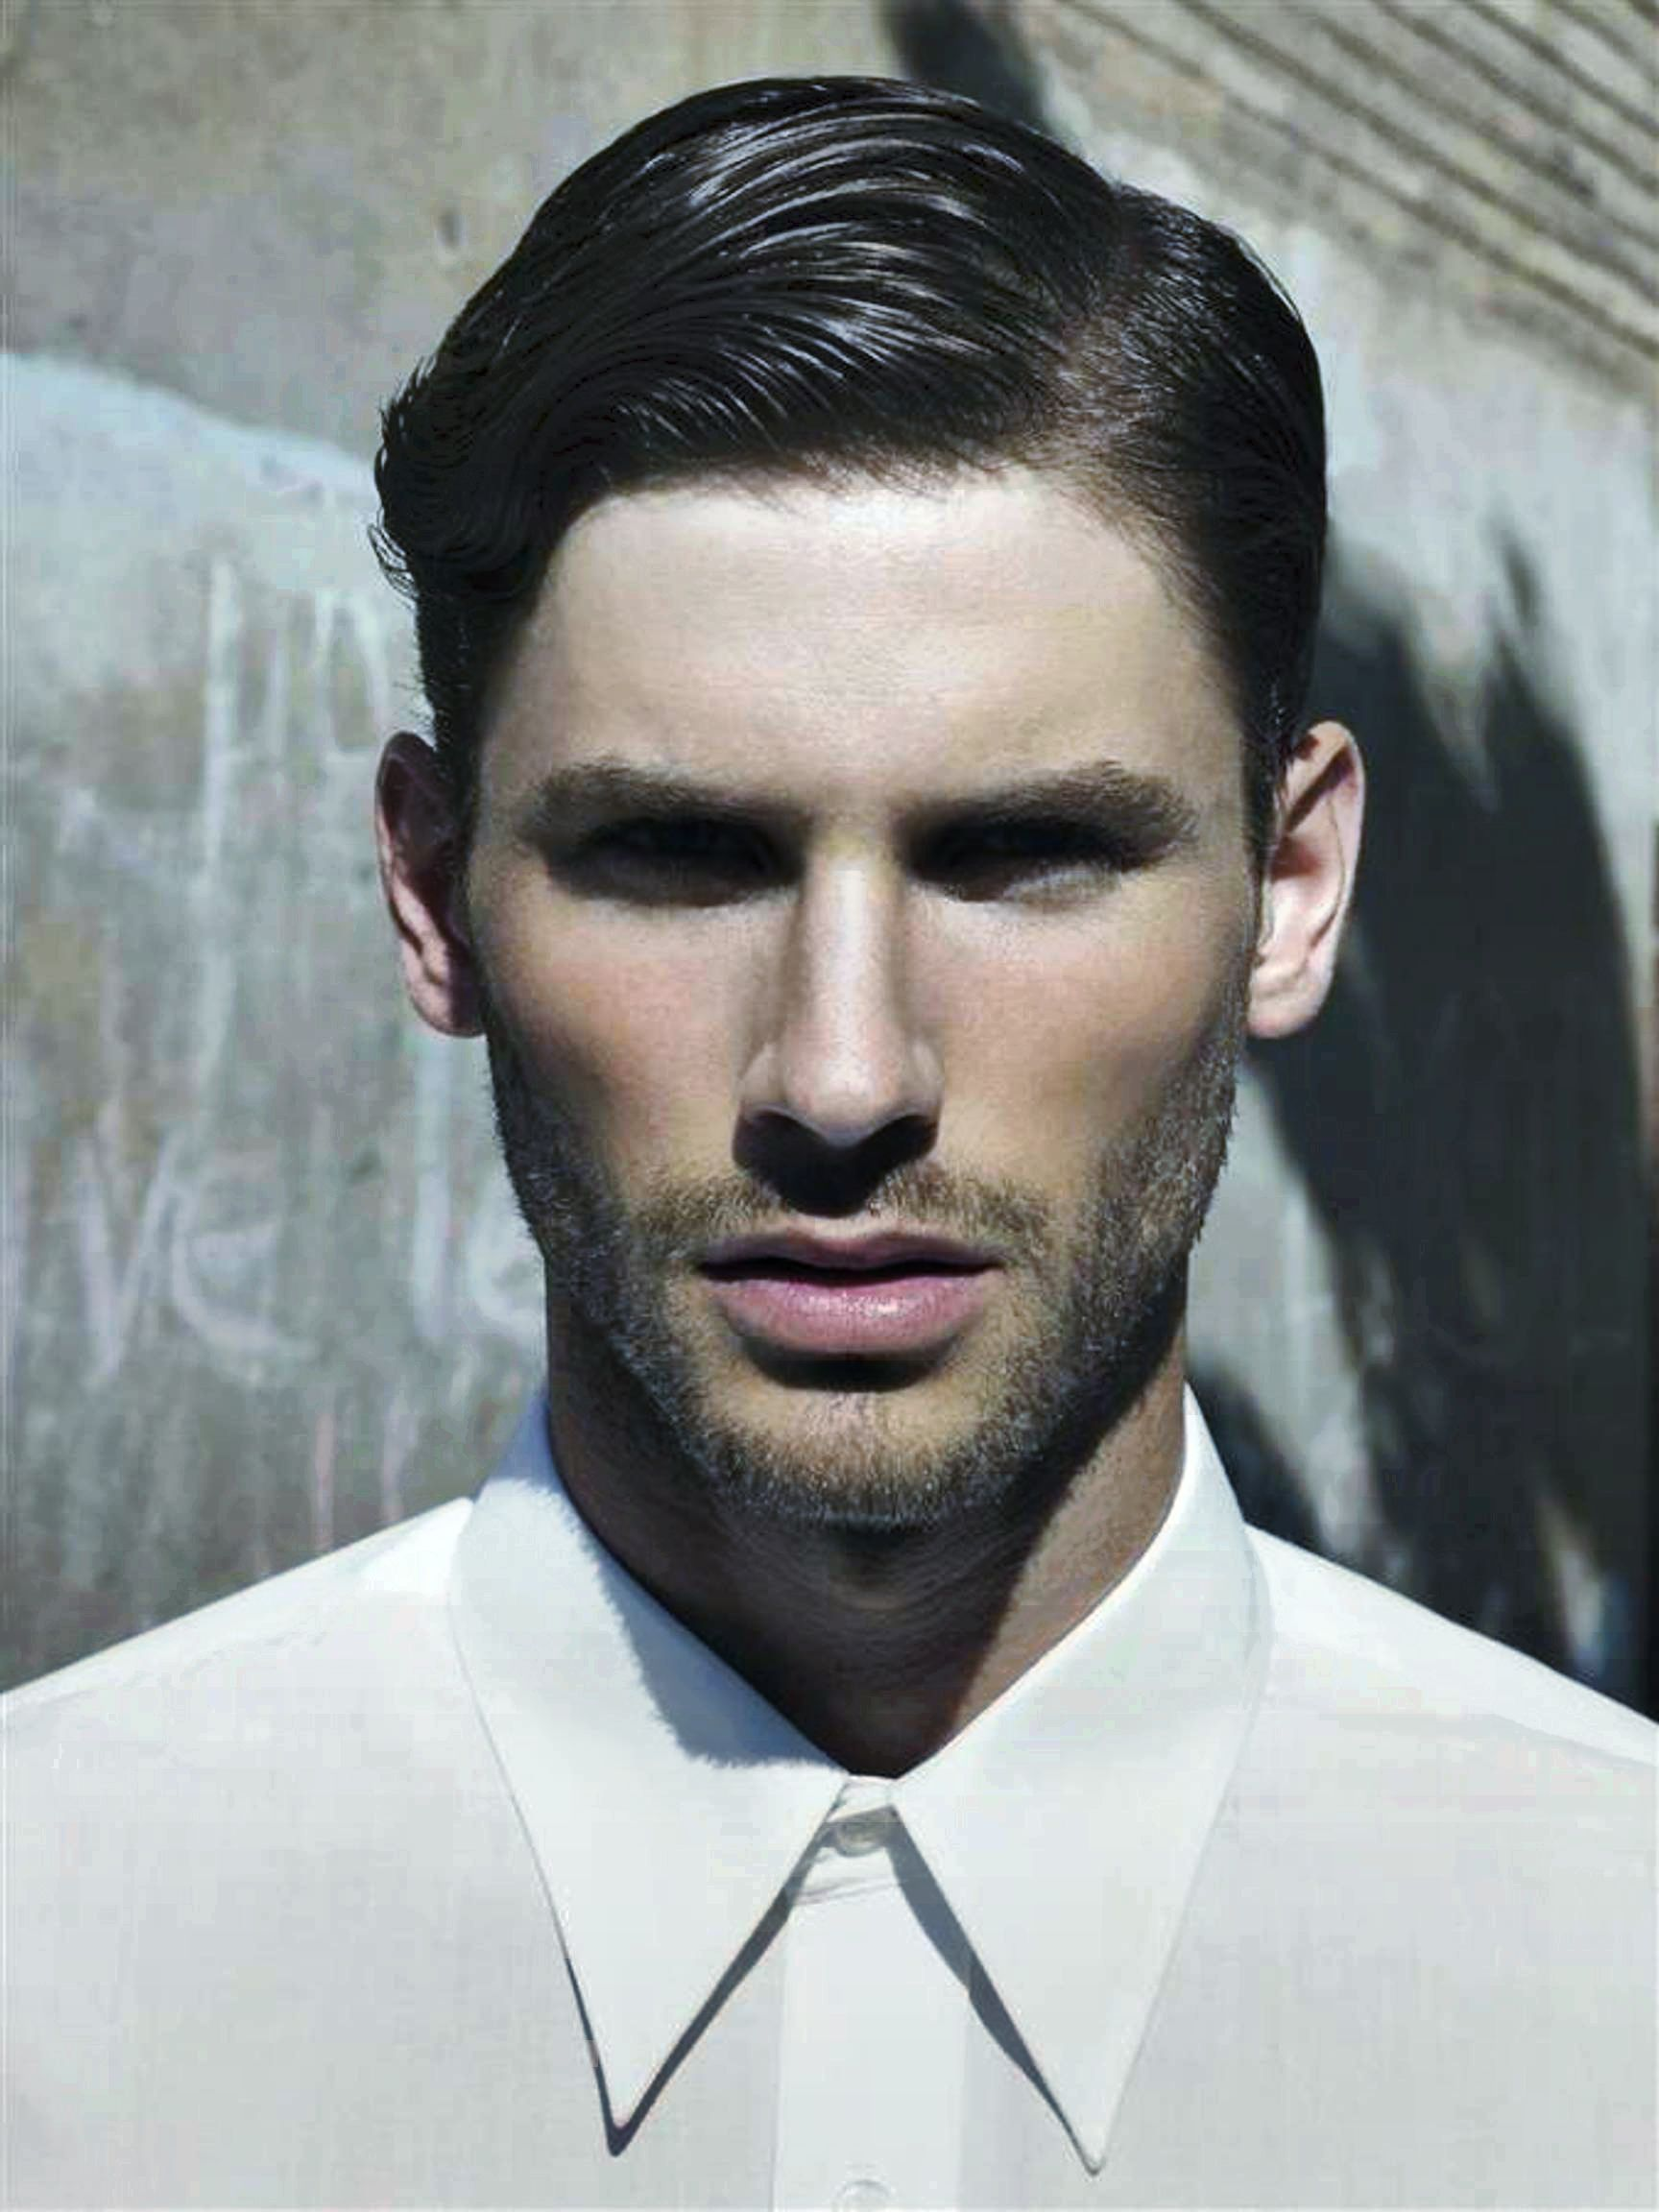 classy hairstyles for men ideas